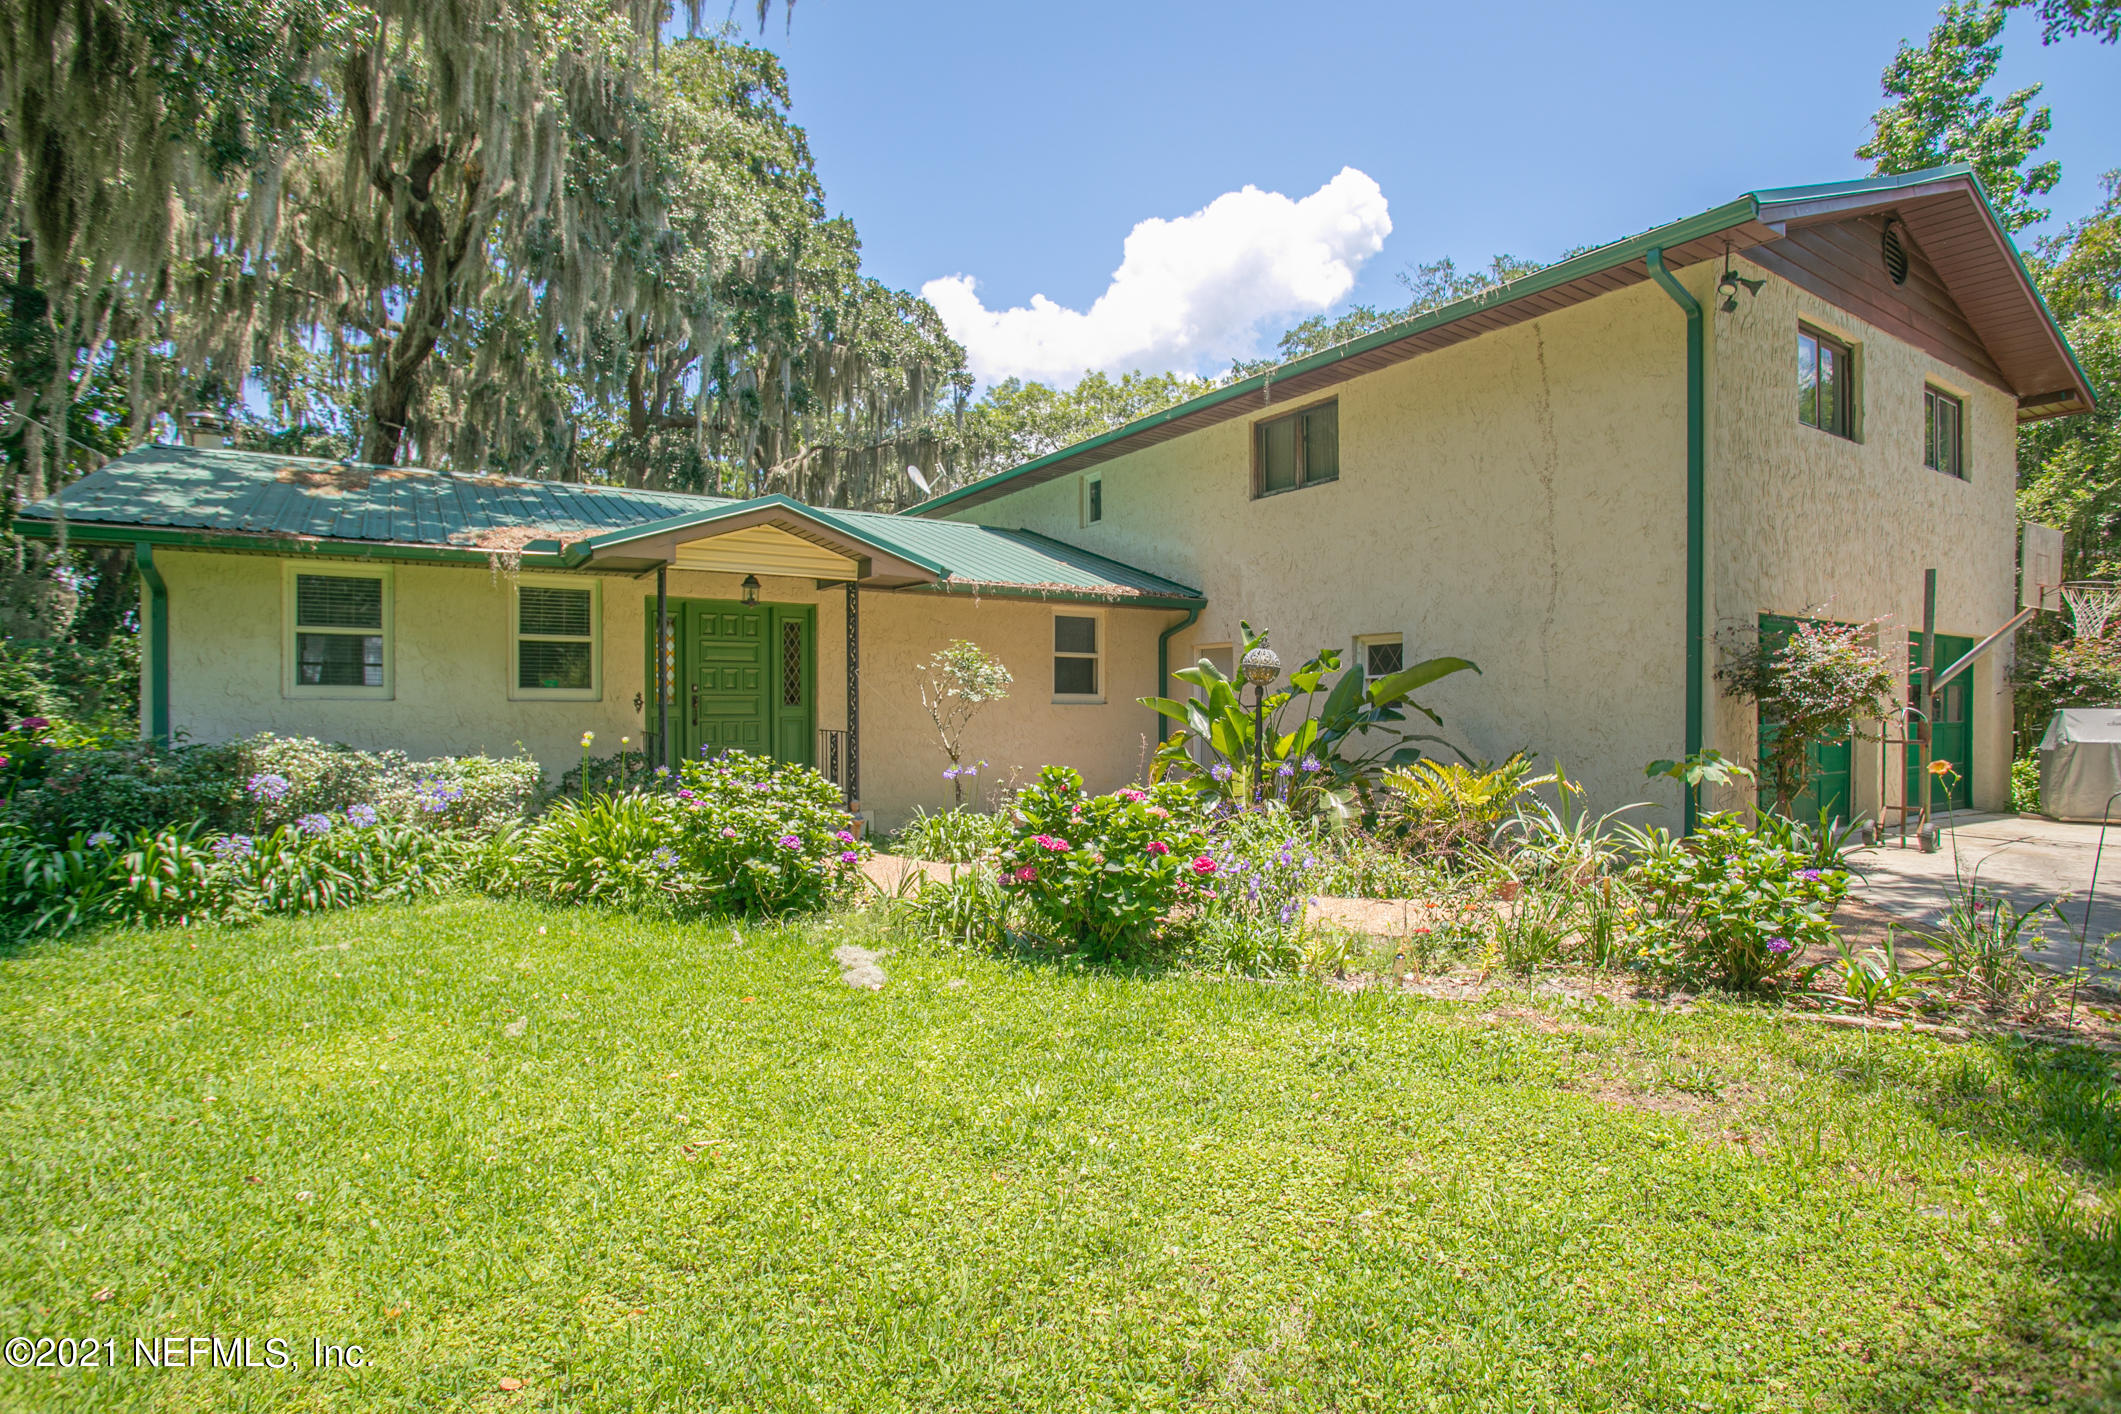 4877 RAGGEDY POINT, ORANGE PARK, FLORIDA 32003, 4 Bedrooms Bedrooms, ,2 BathroomsBathrooms,Residential,For sale,RAGGEDY POINT,1113869